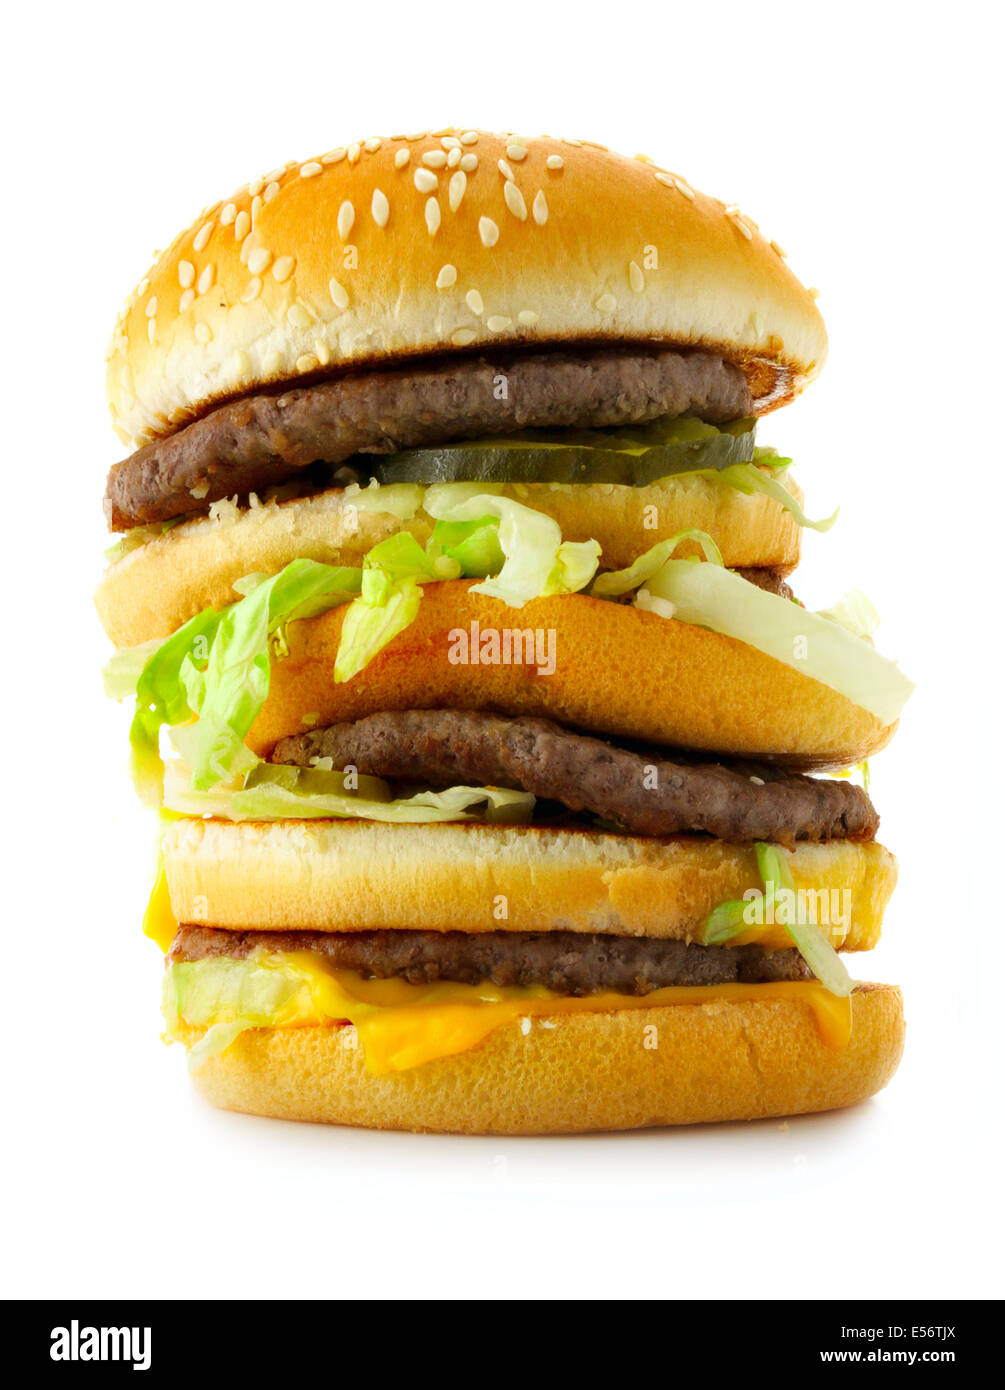 Big burger isolated over a white background - Stock Image